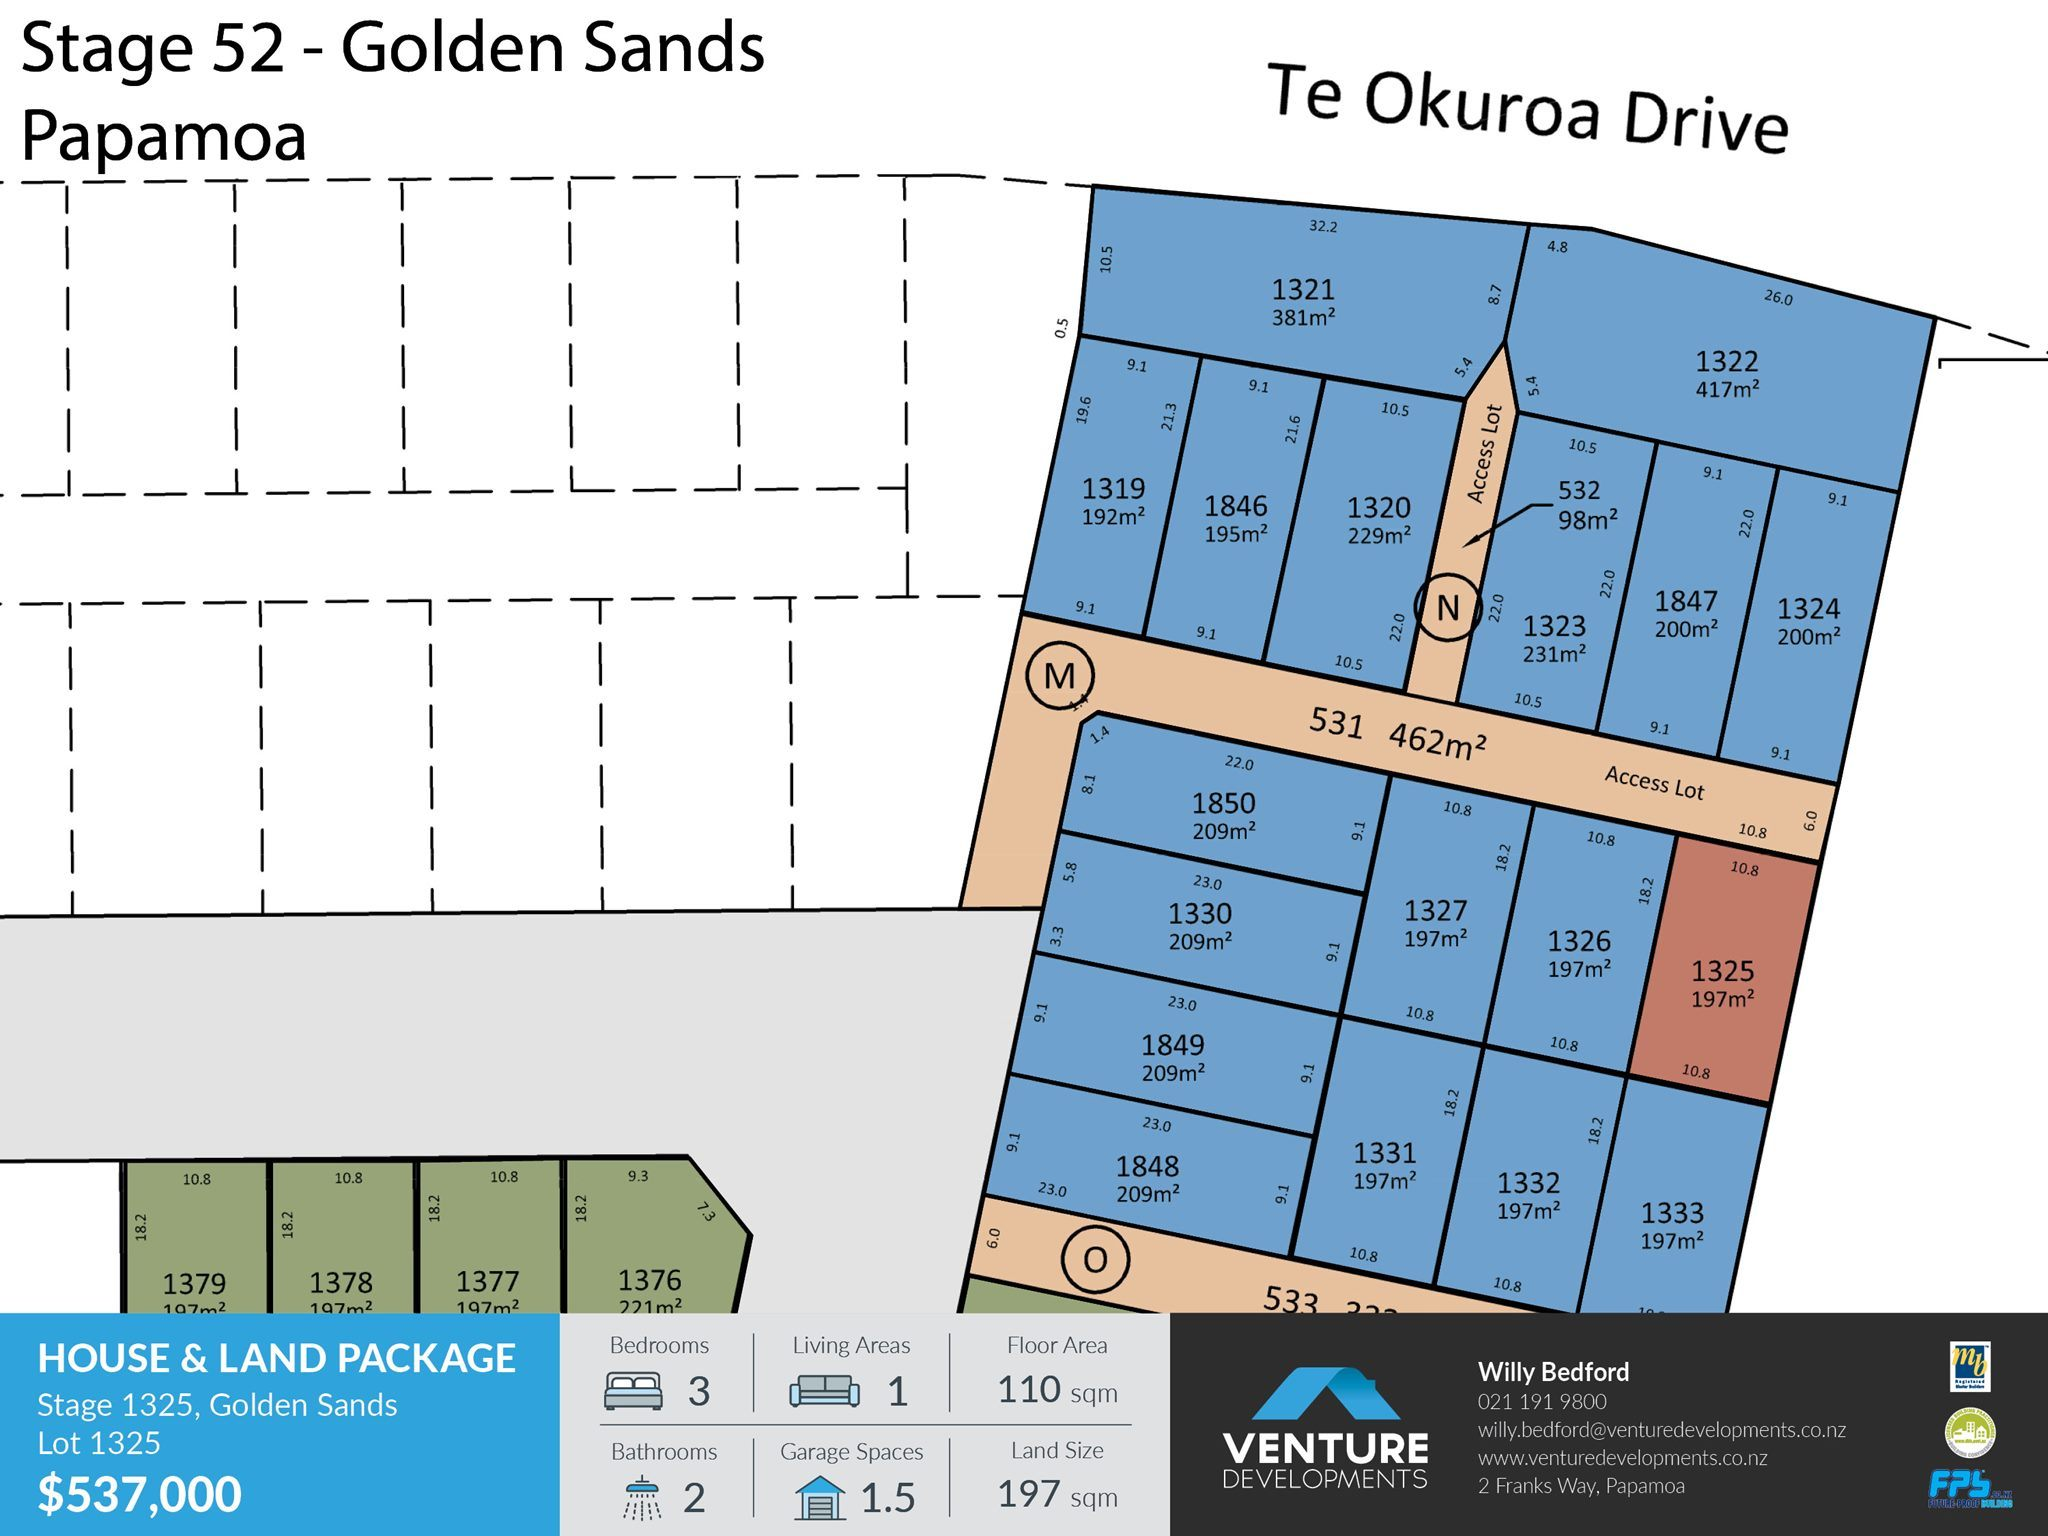 Lot 1326, Stage 52 - Golden Sands